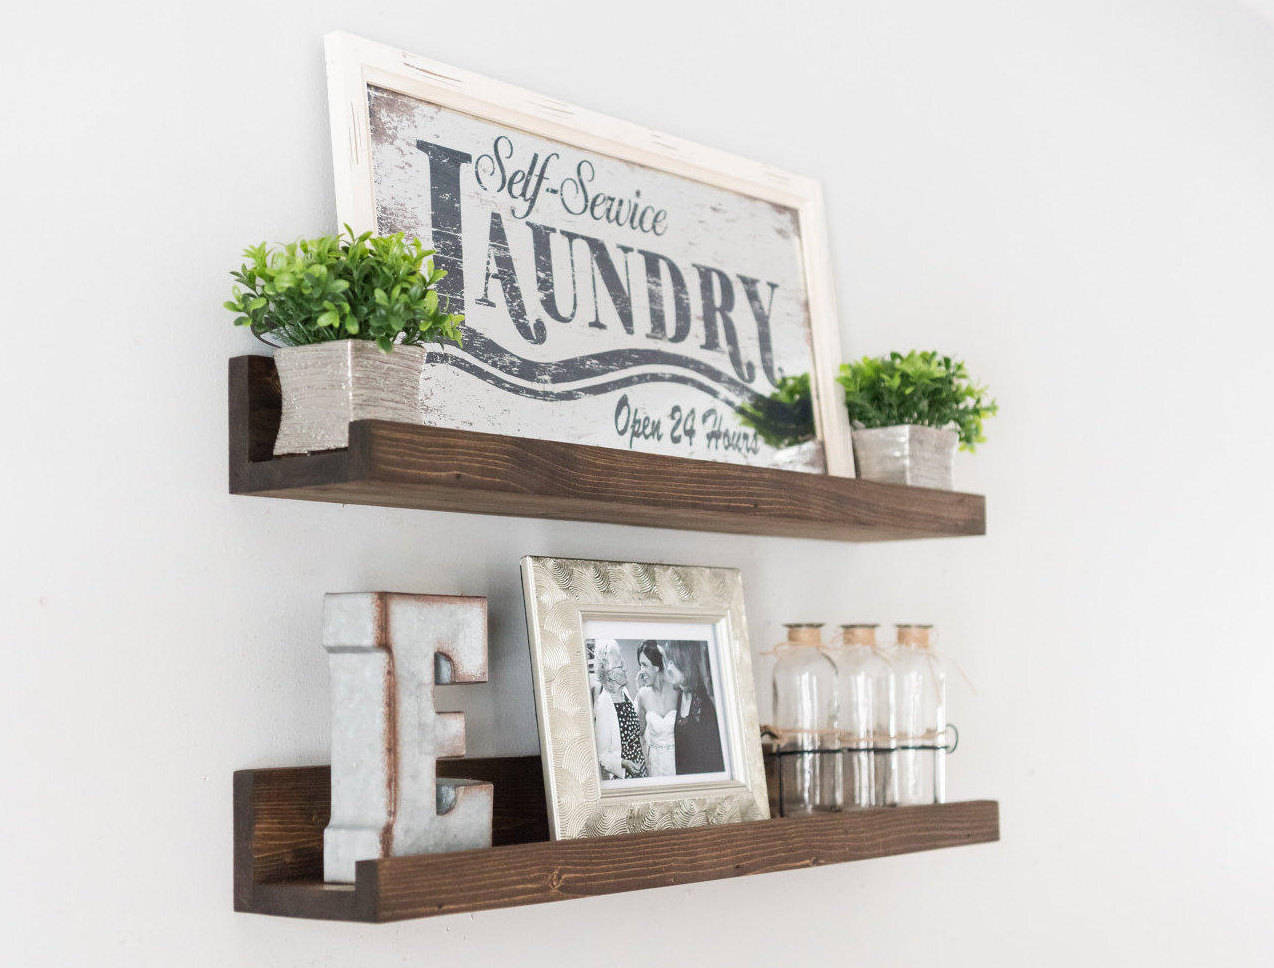 Enjoyable Free Shipping Gallery Wall Shelf Ledge Shelf Nursery Home Interior And Landscaping Oversignezvosmurscom